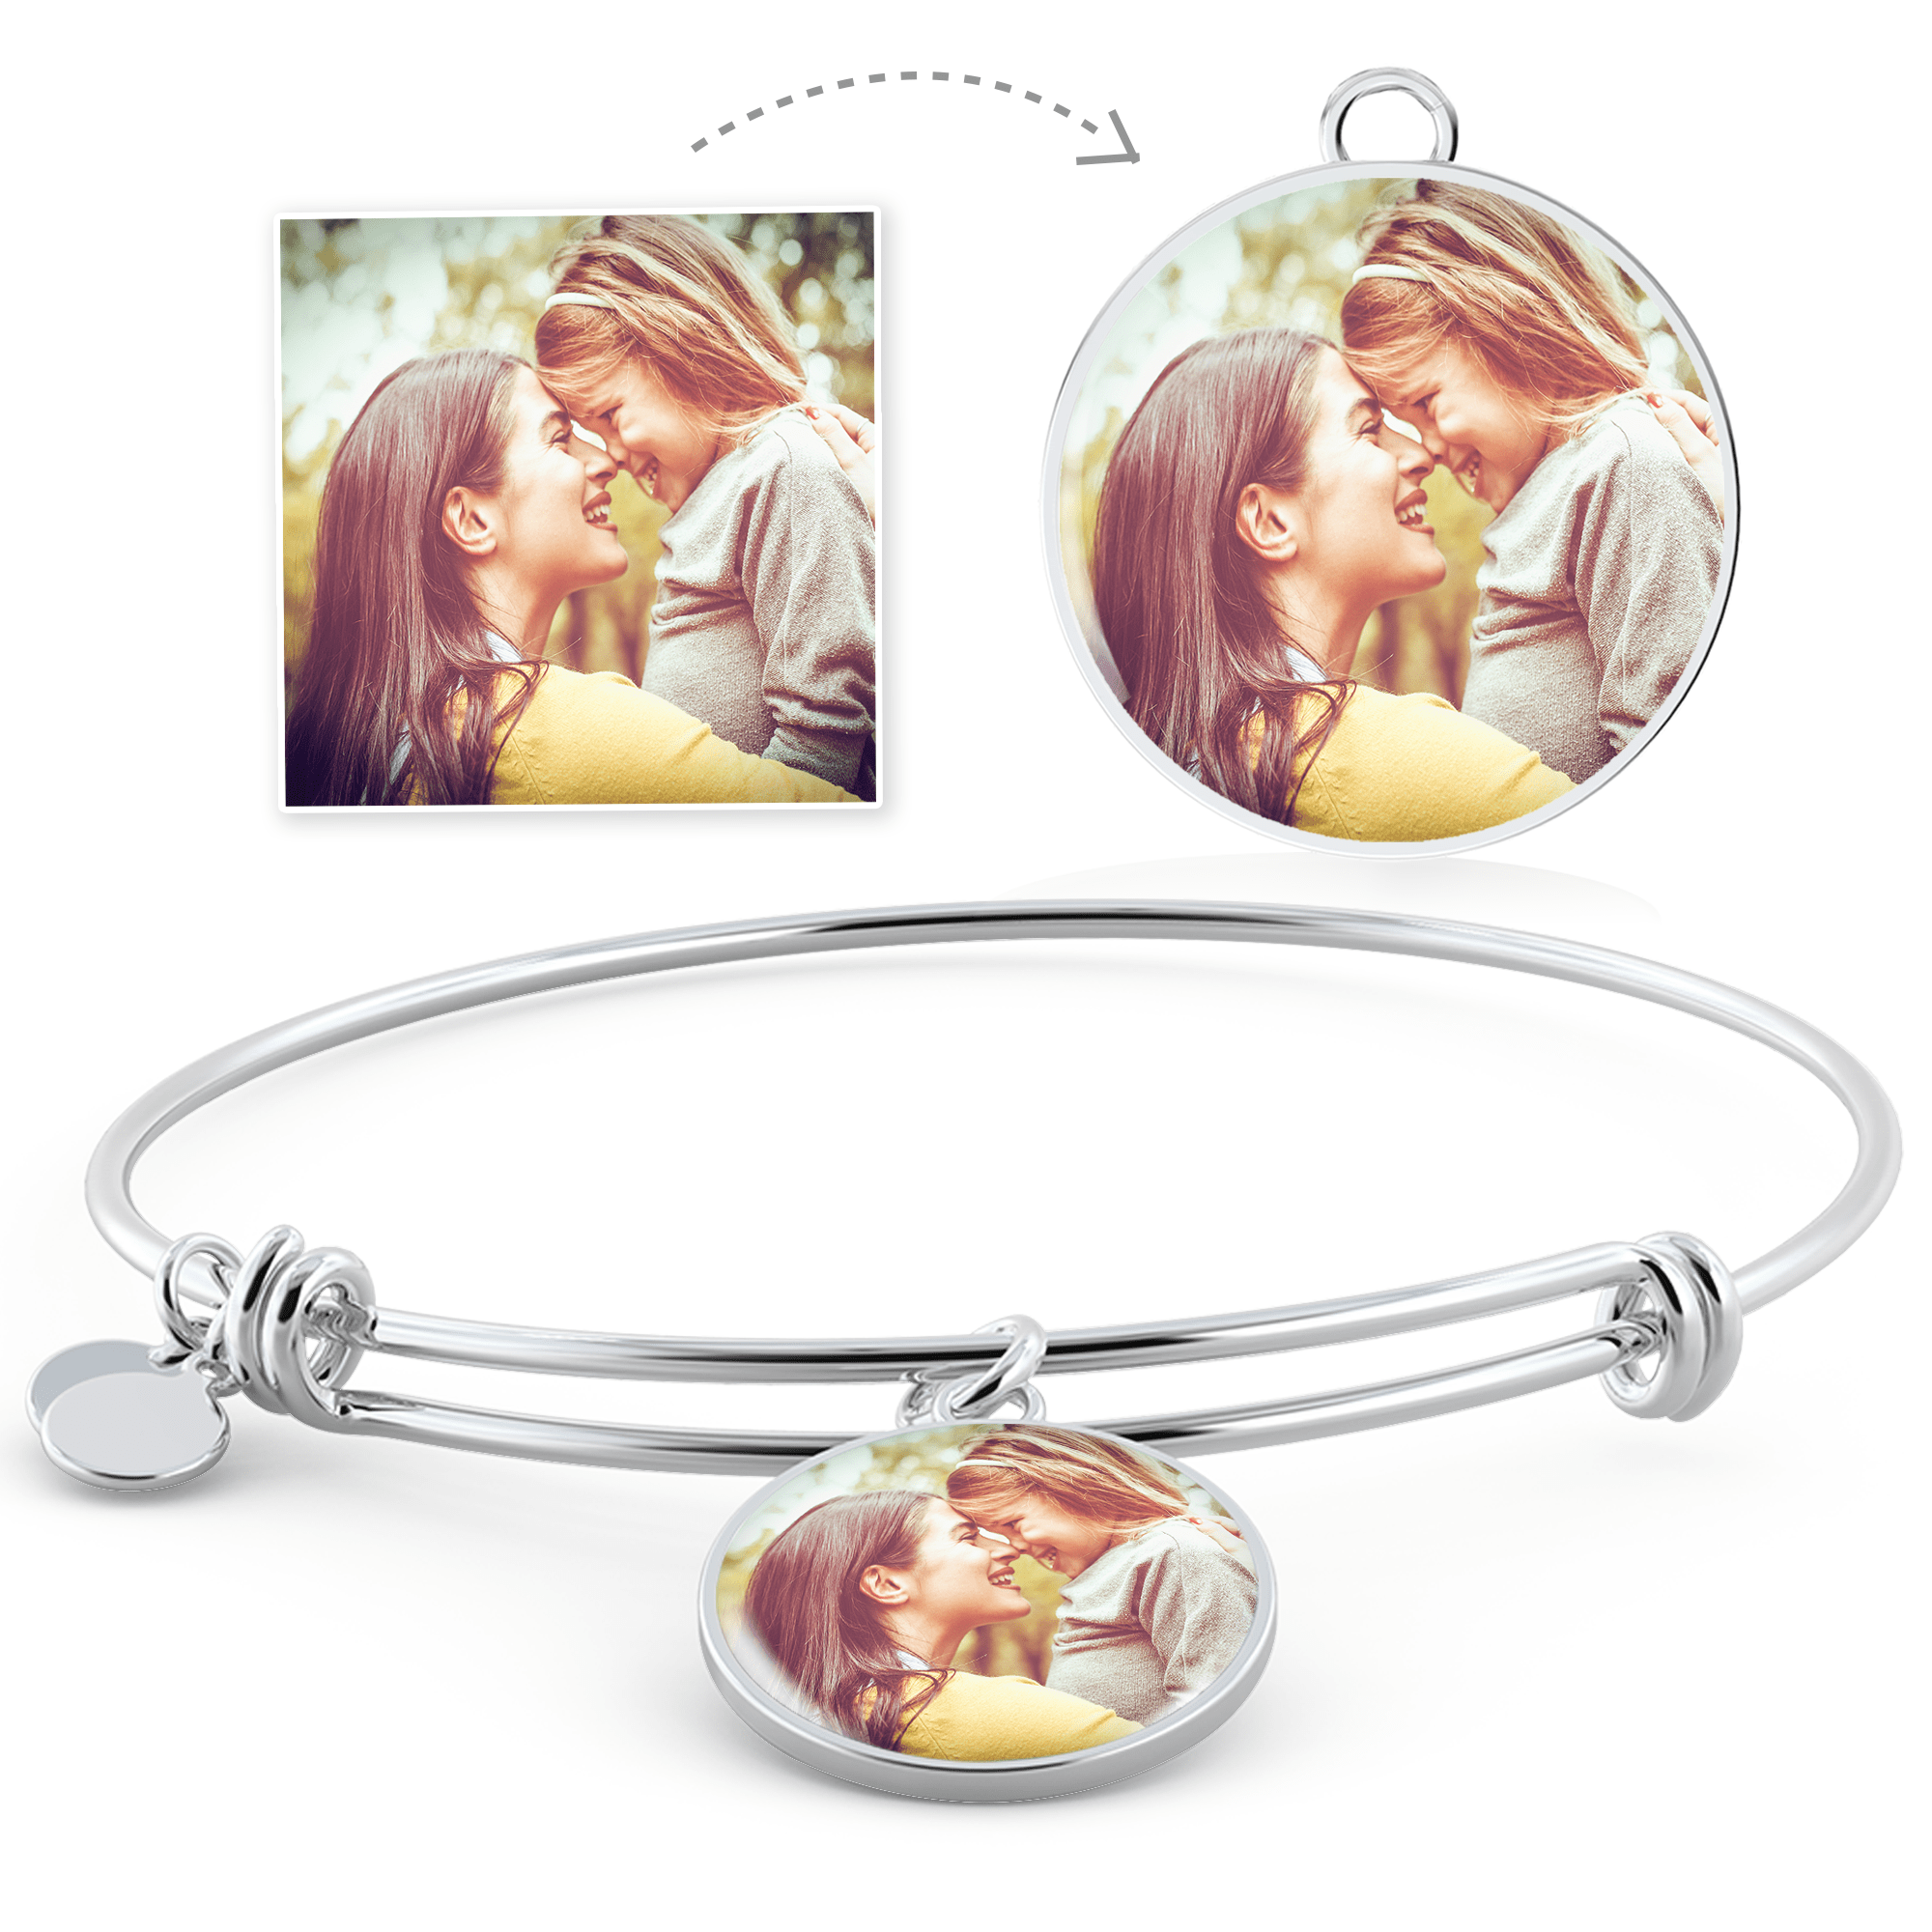 MEMORIAL ADJUSTABLE PHOTO BANGLE